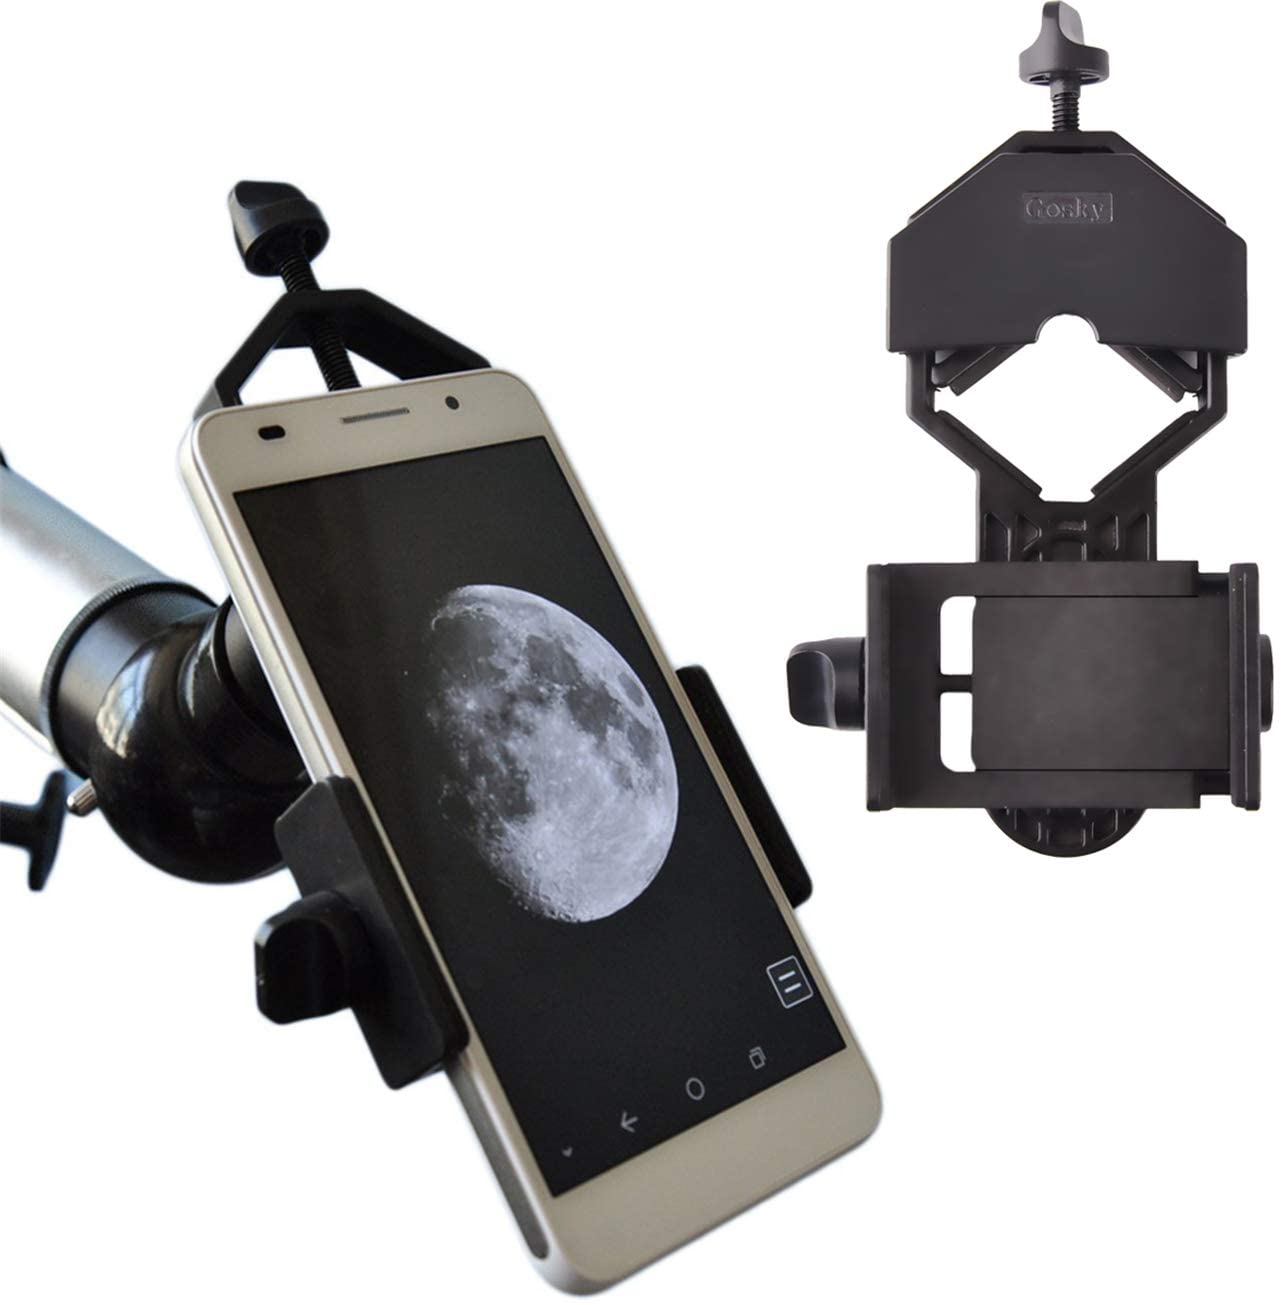 Smartphone Telescope Adapters: Are They Worth Your Time And Money? 1